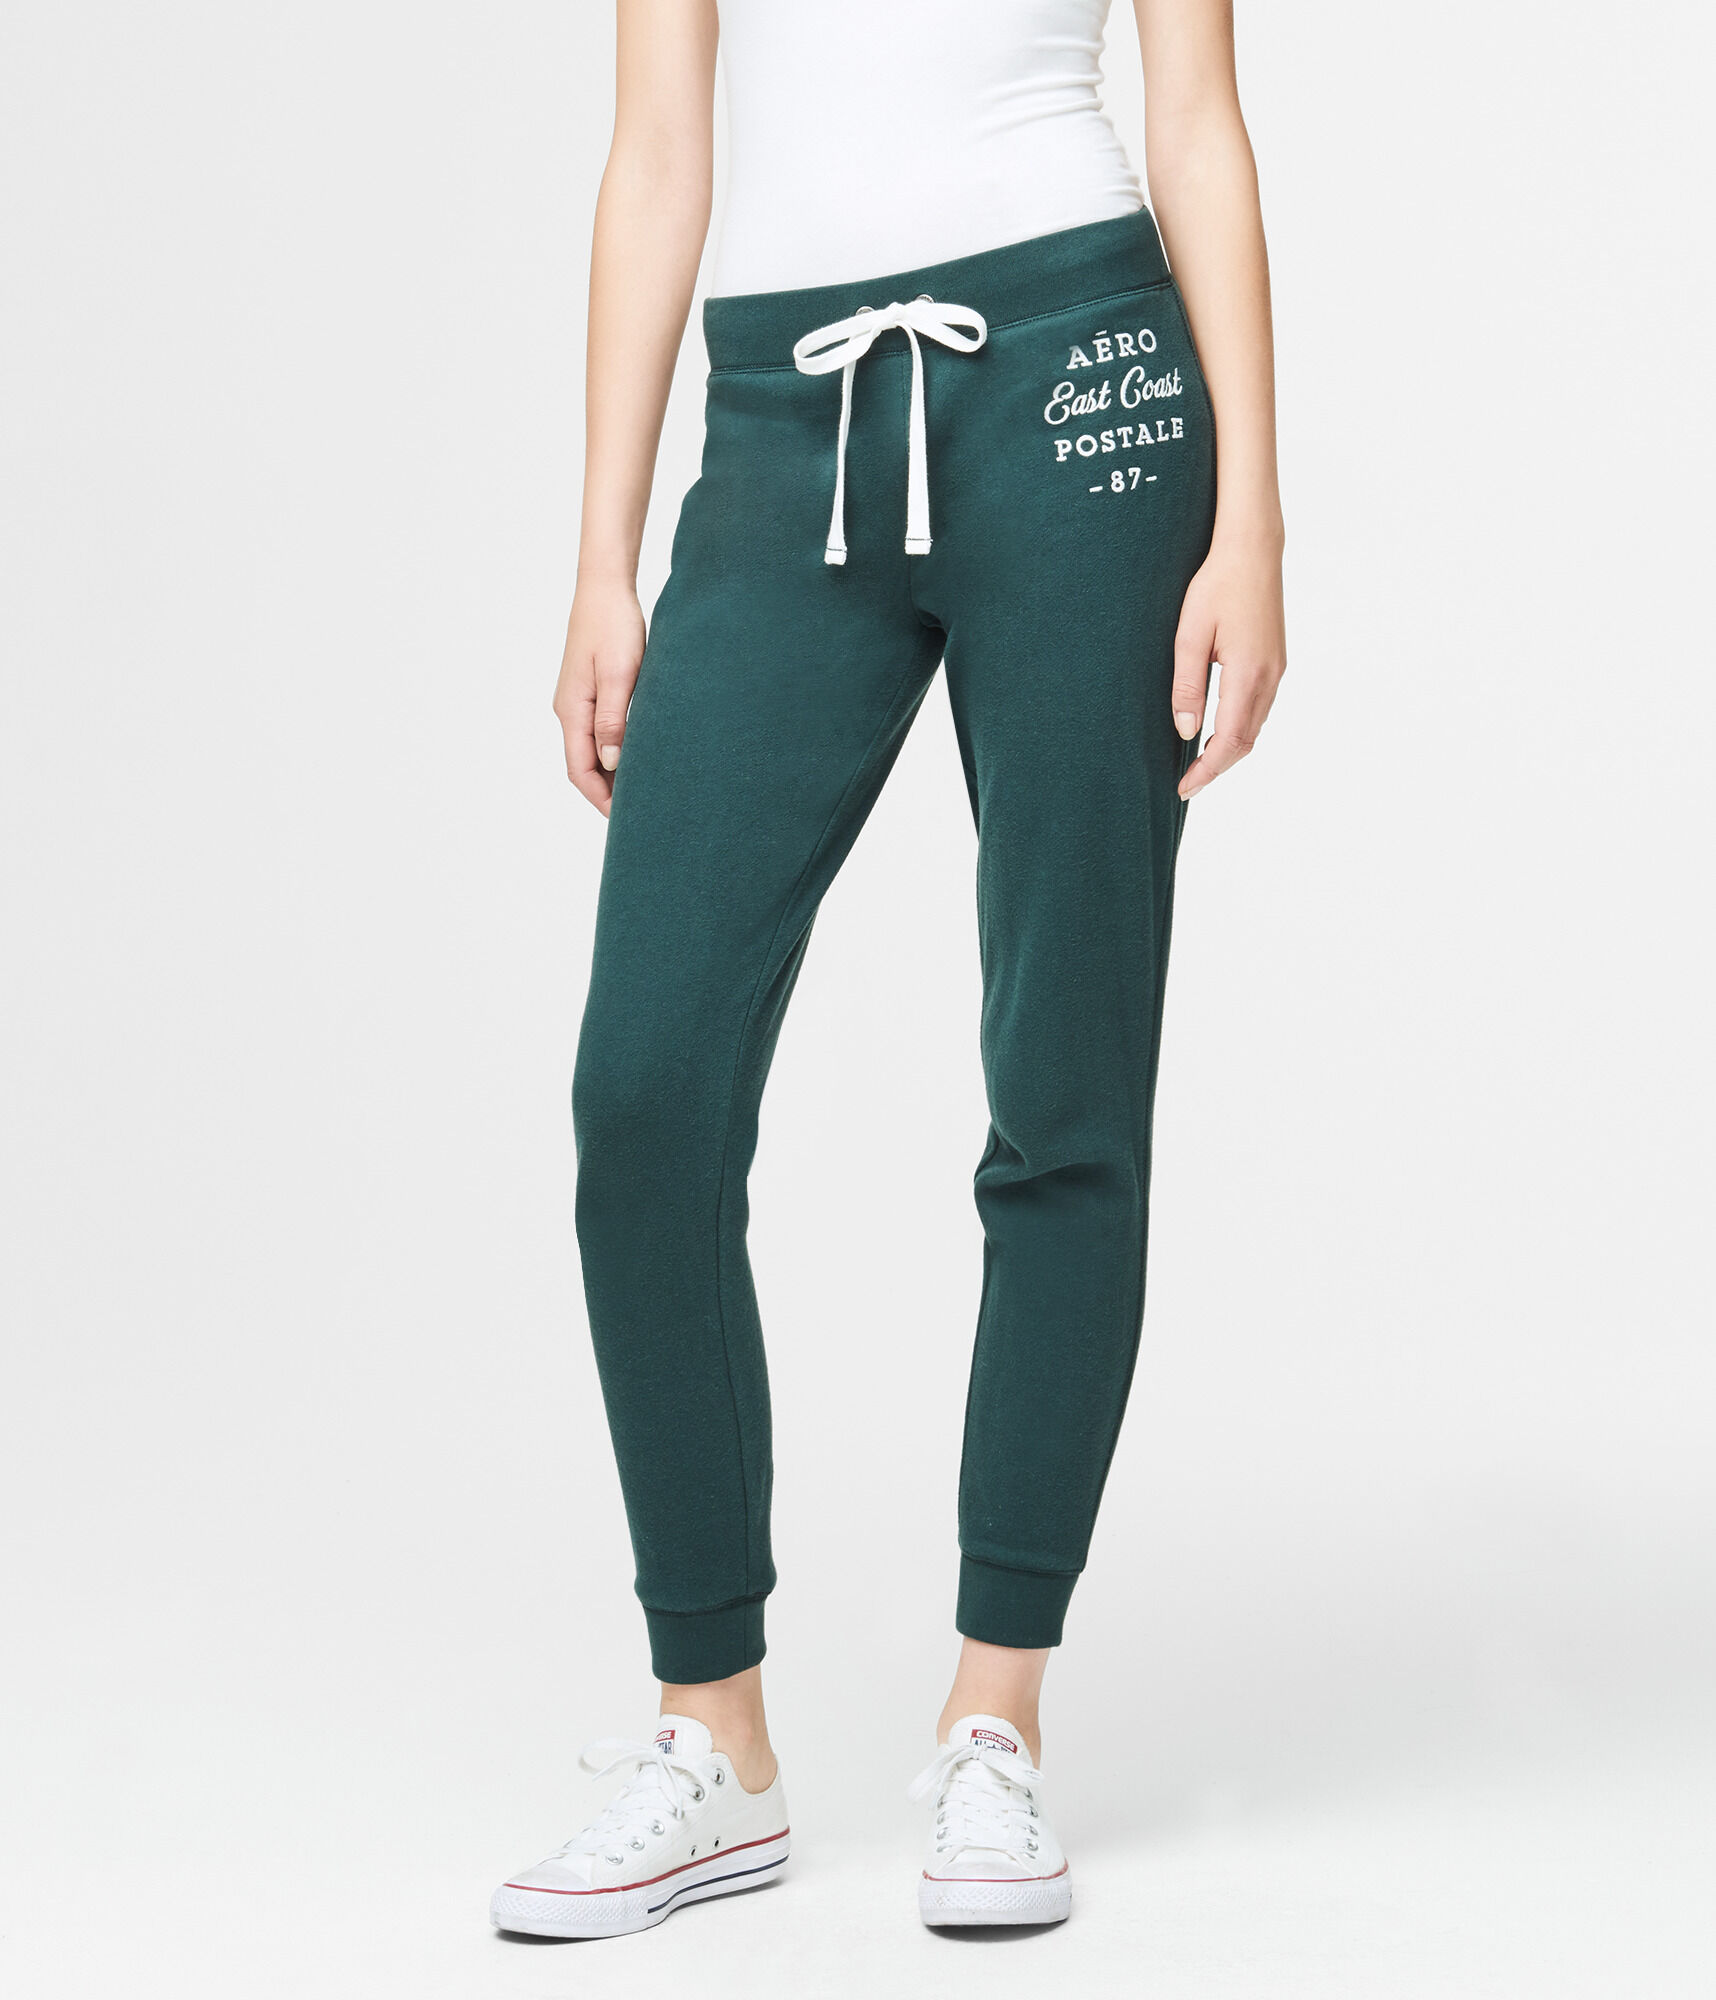 Fashion style Boyfriend Aeropostale sweatpants for girls